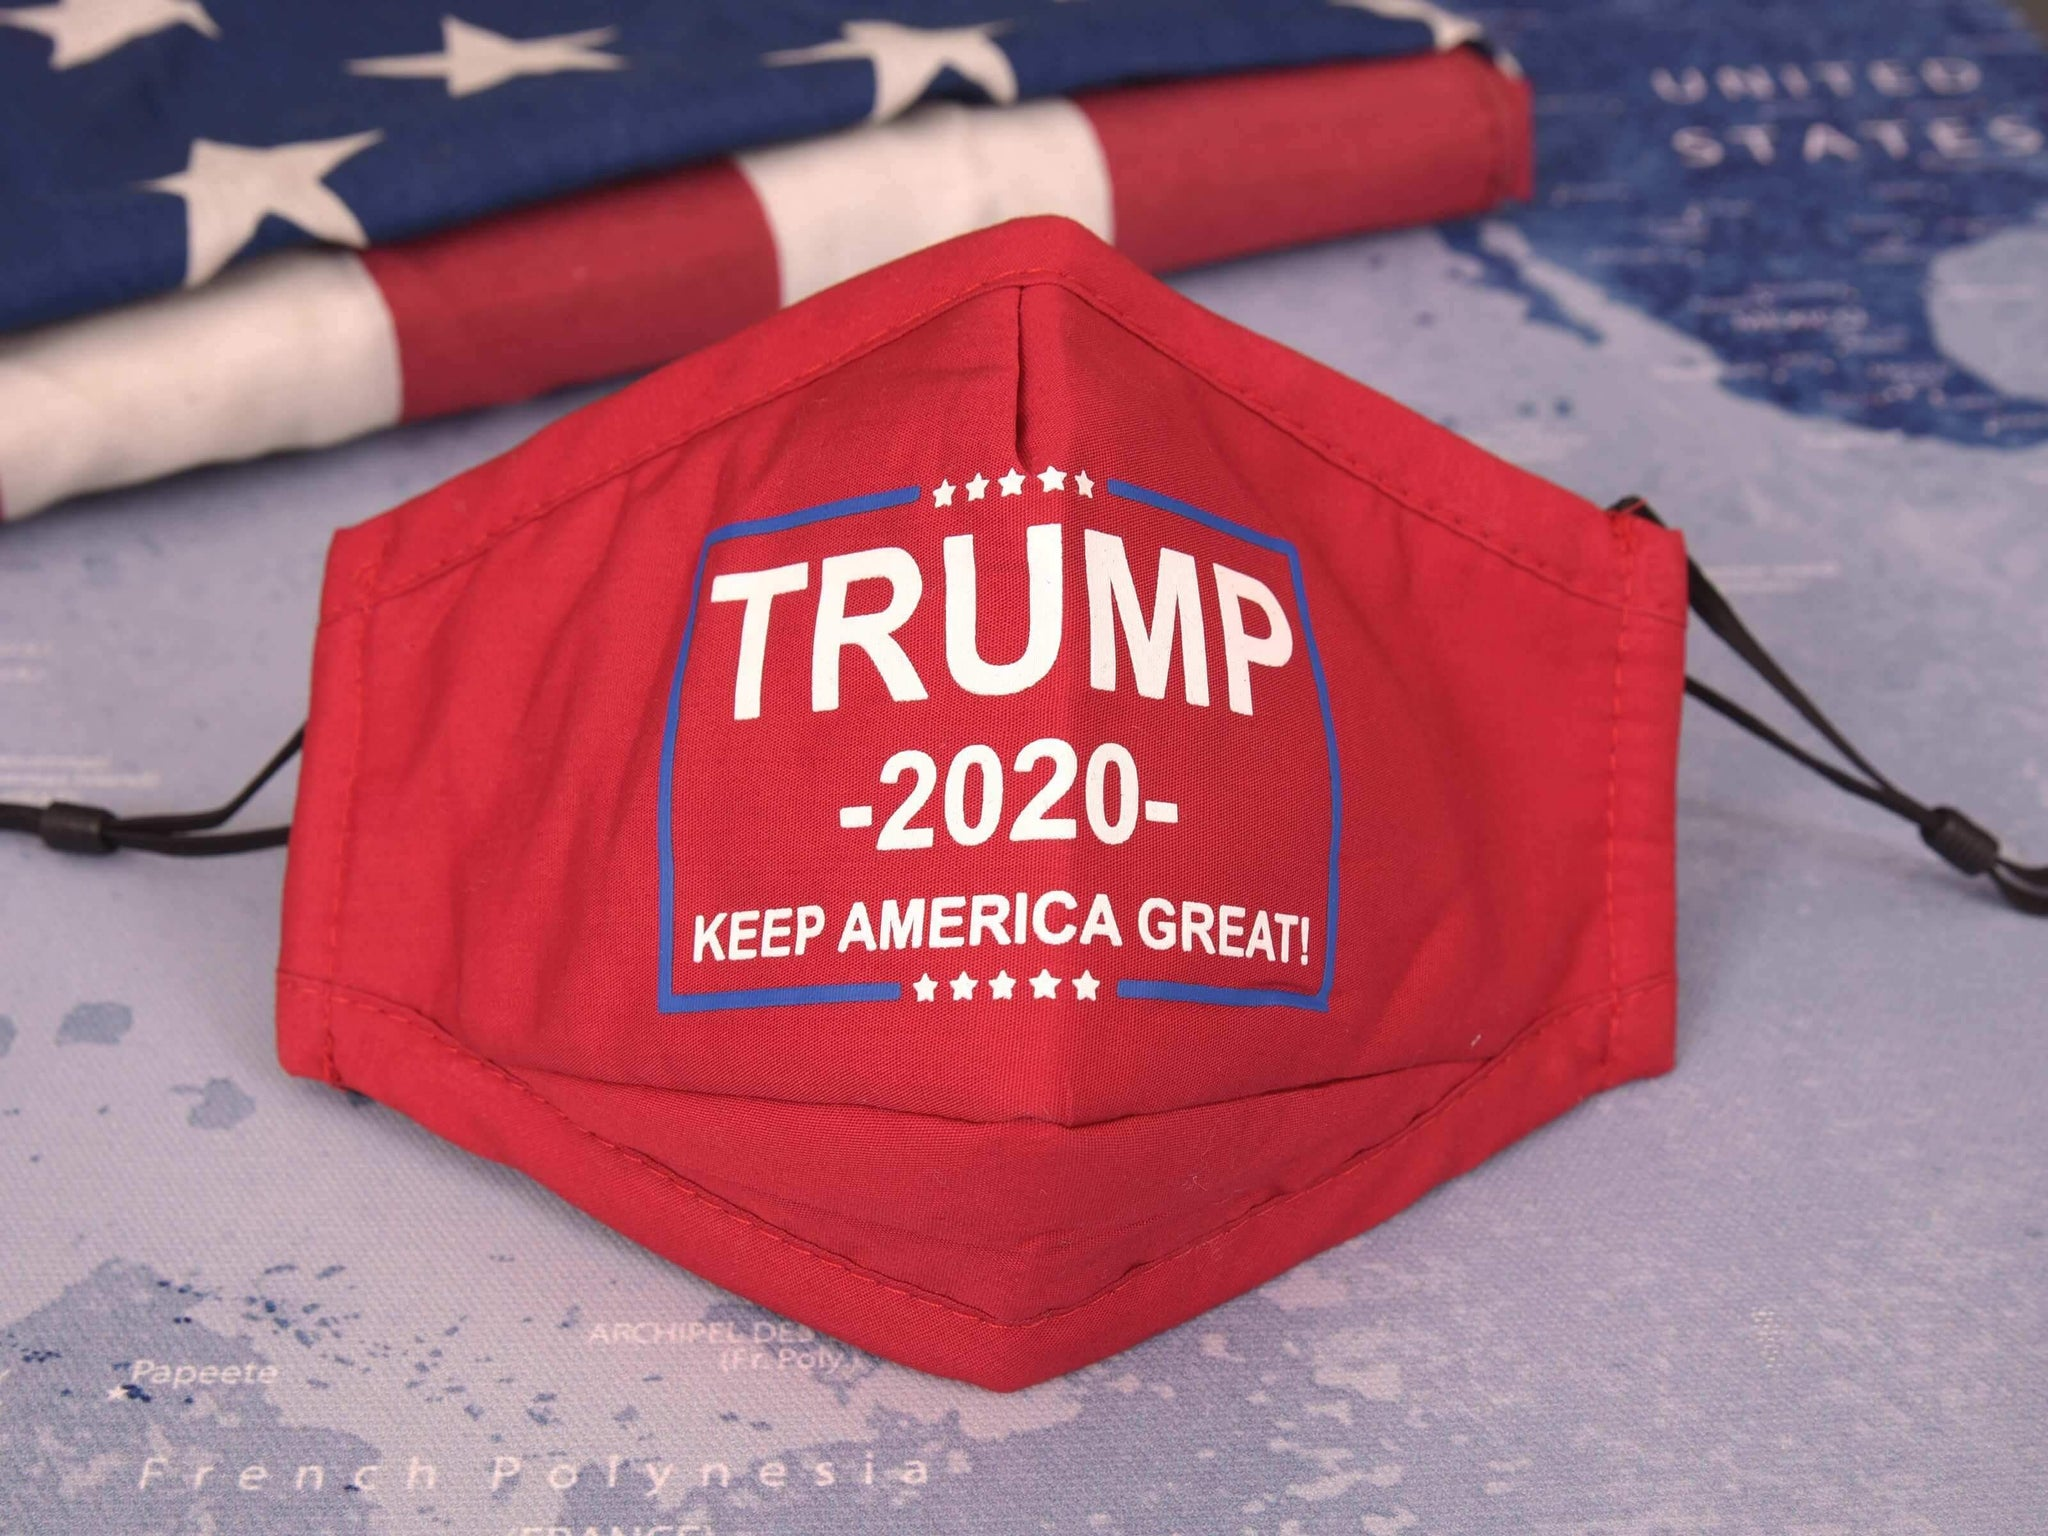 Welcome to Trump 2020 Masks - Protect Yourself With Pride!